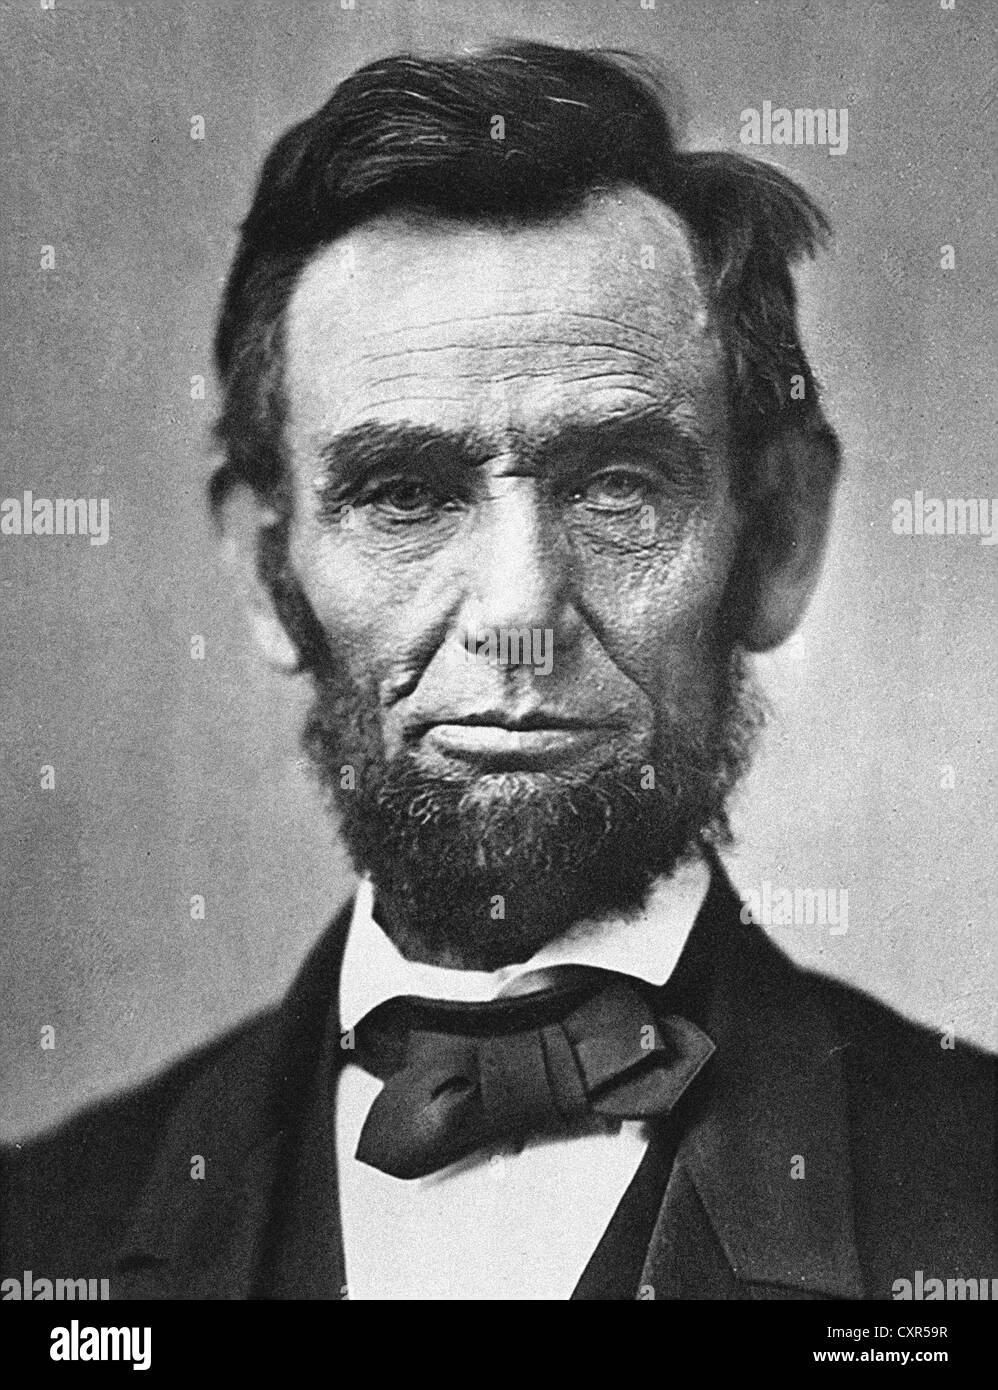 Abraham Lincoln 16th President of the United States - Stock Image